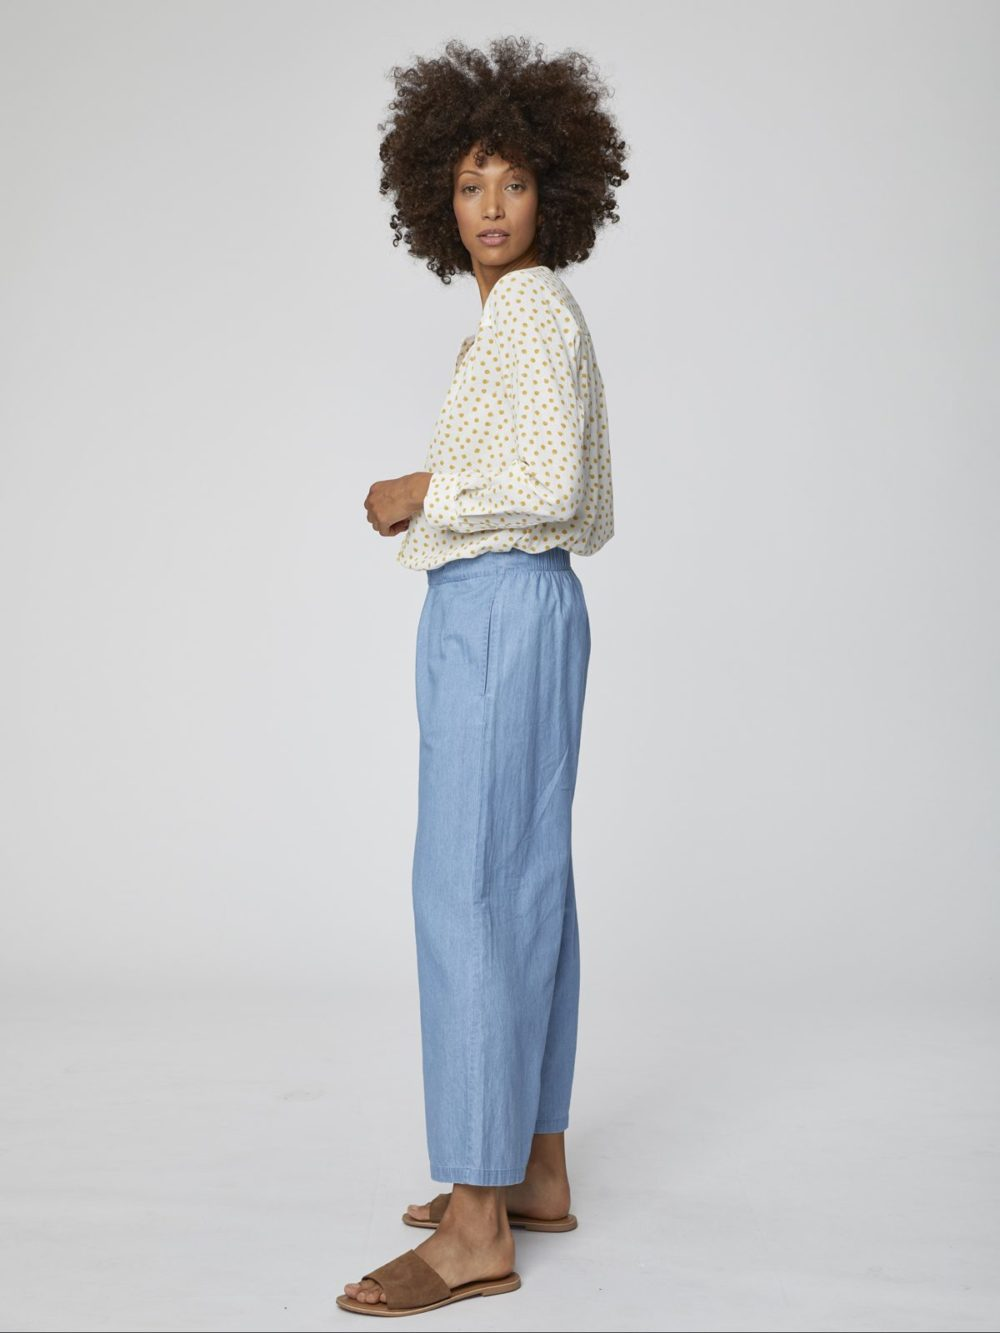 WSB4174 Samara Culottes Thought Clothing Katie Kerr Women's Clothing